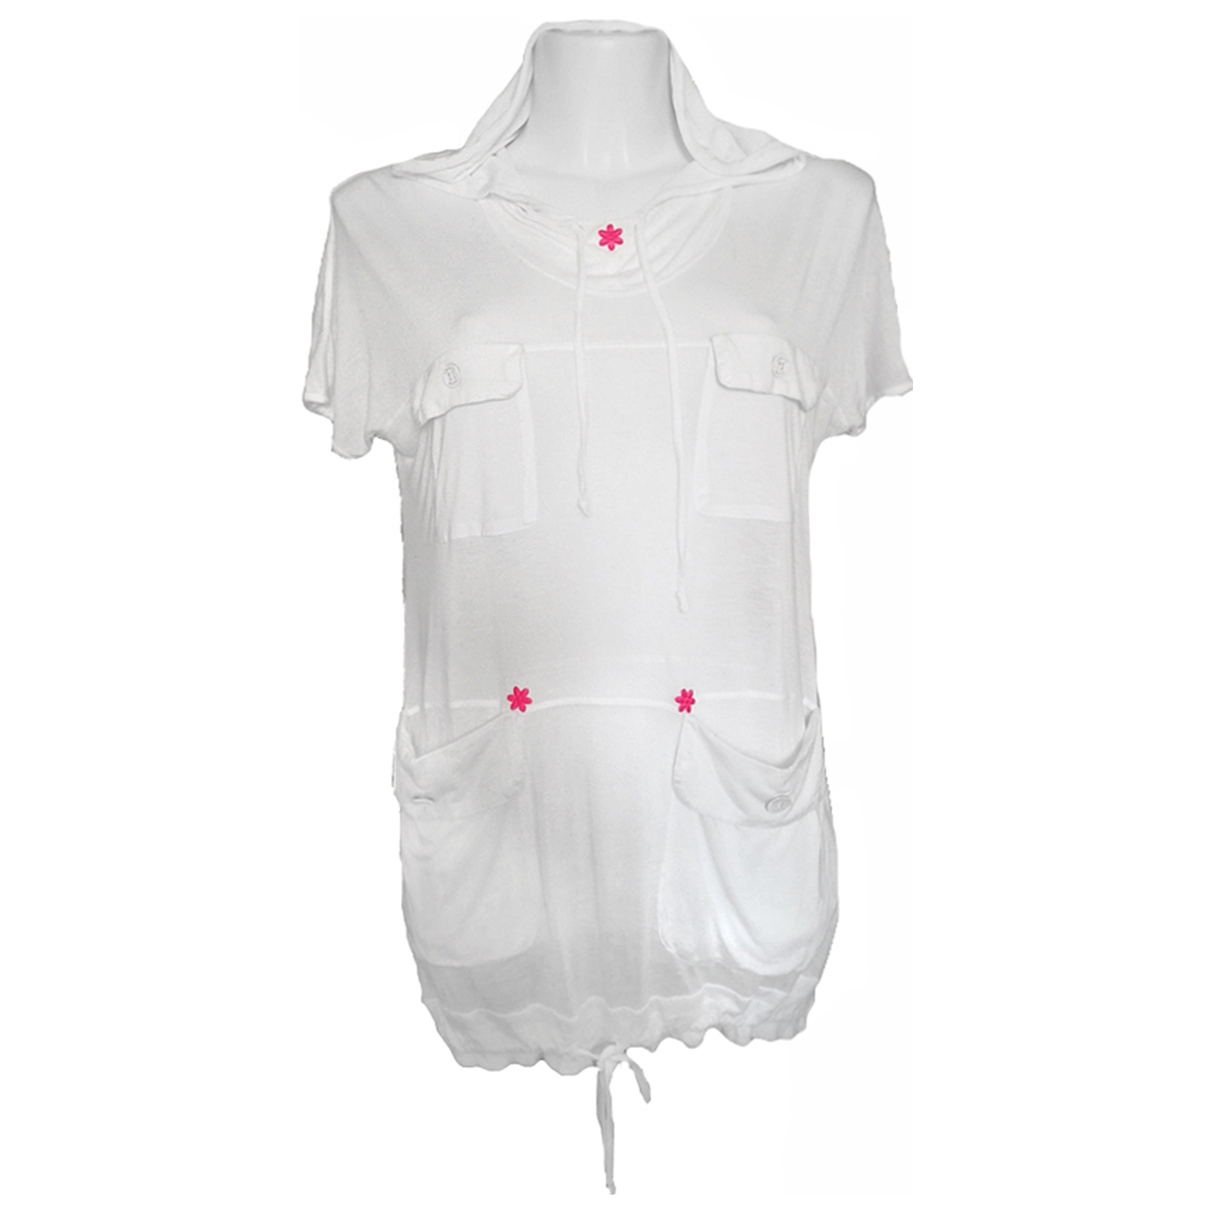 Armani Jeans \N White  top for Women 38 IT